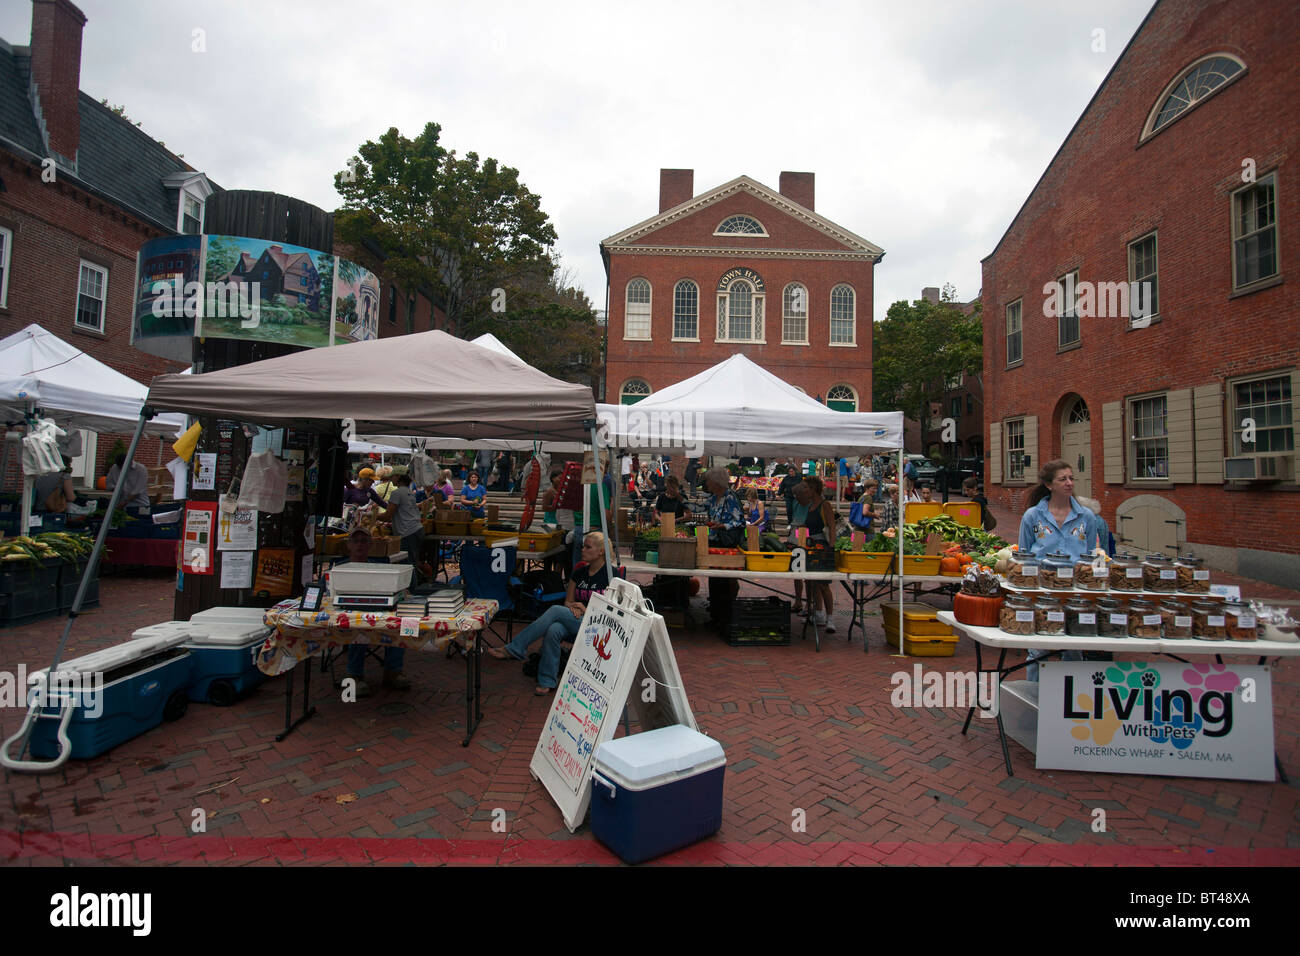 Open air market with tents in front of Town Hall, Salem ...